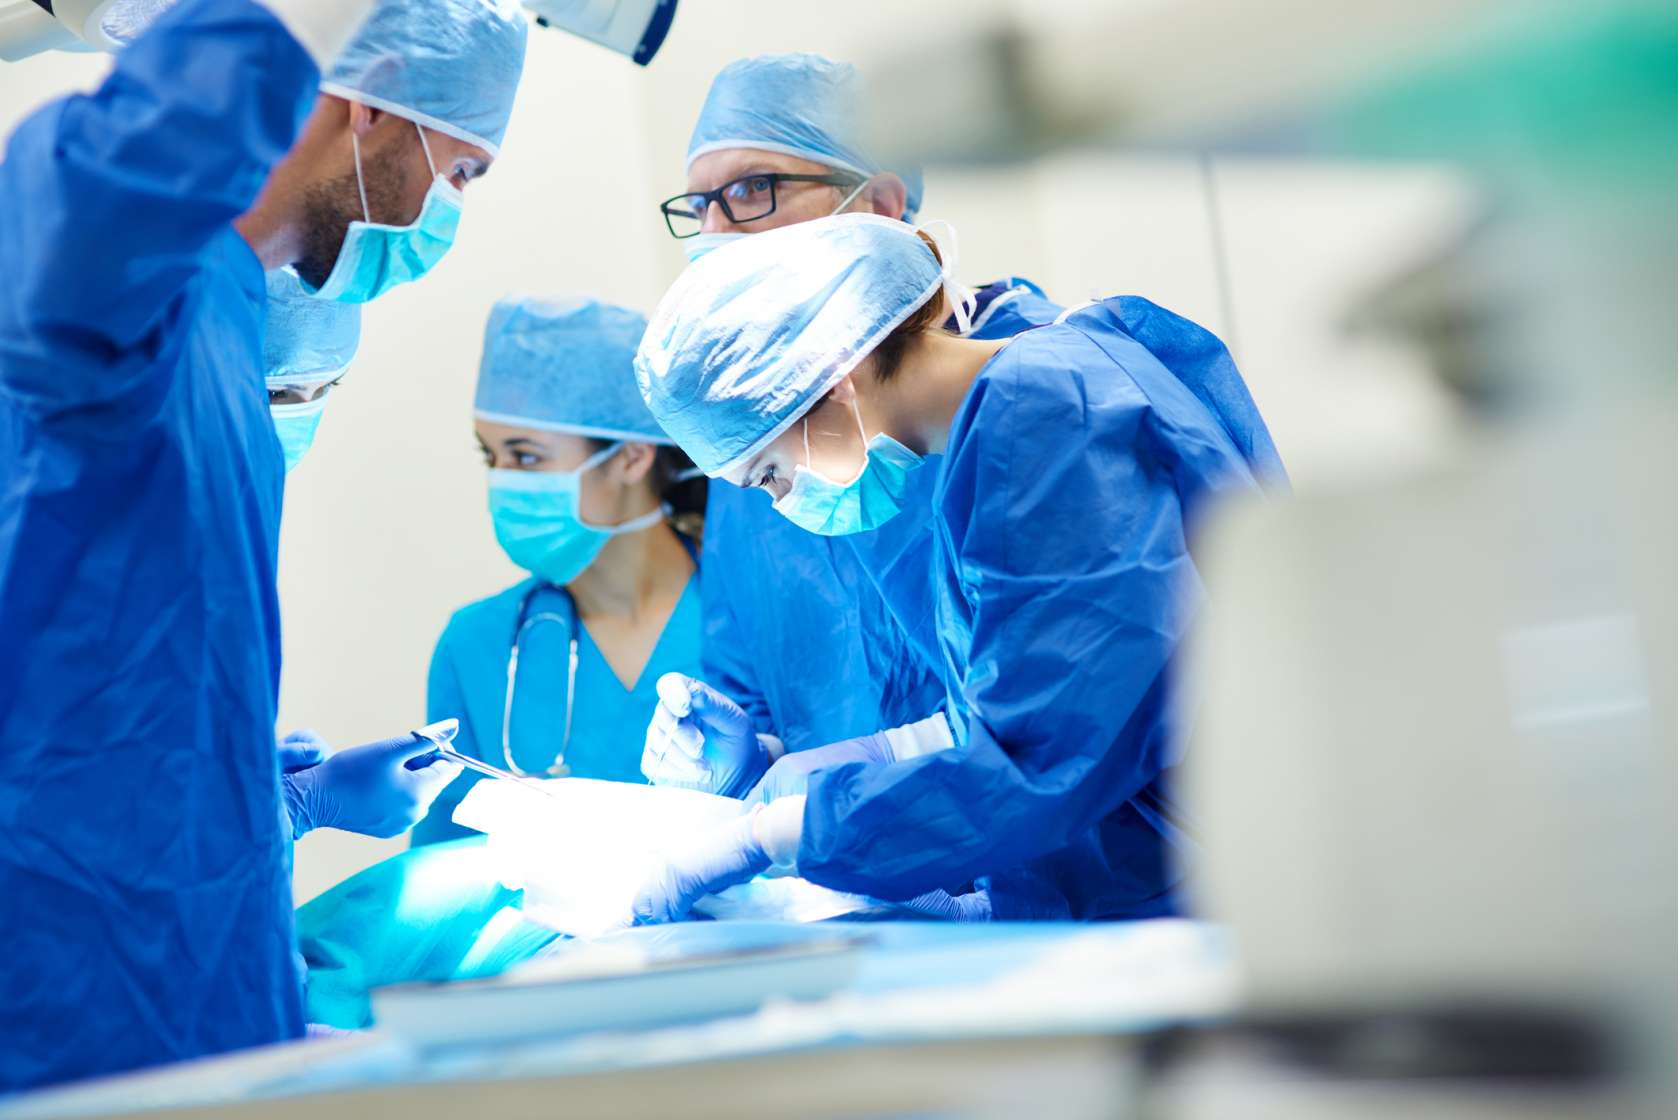 Close up of surgery team operating